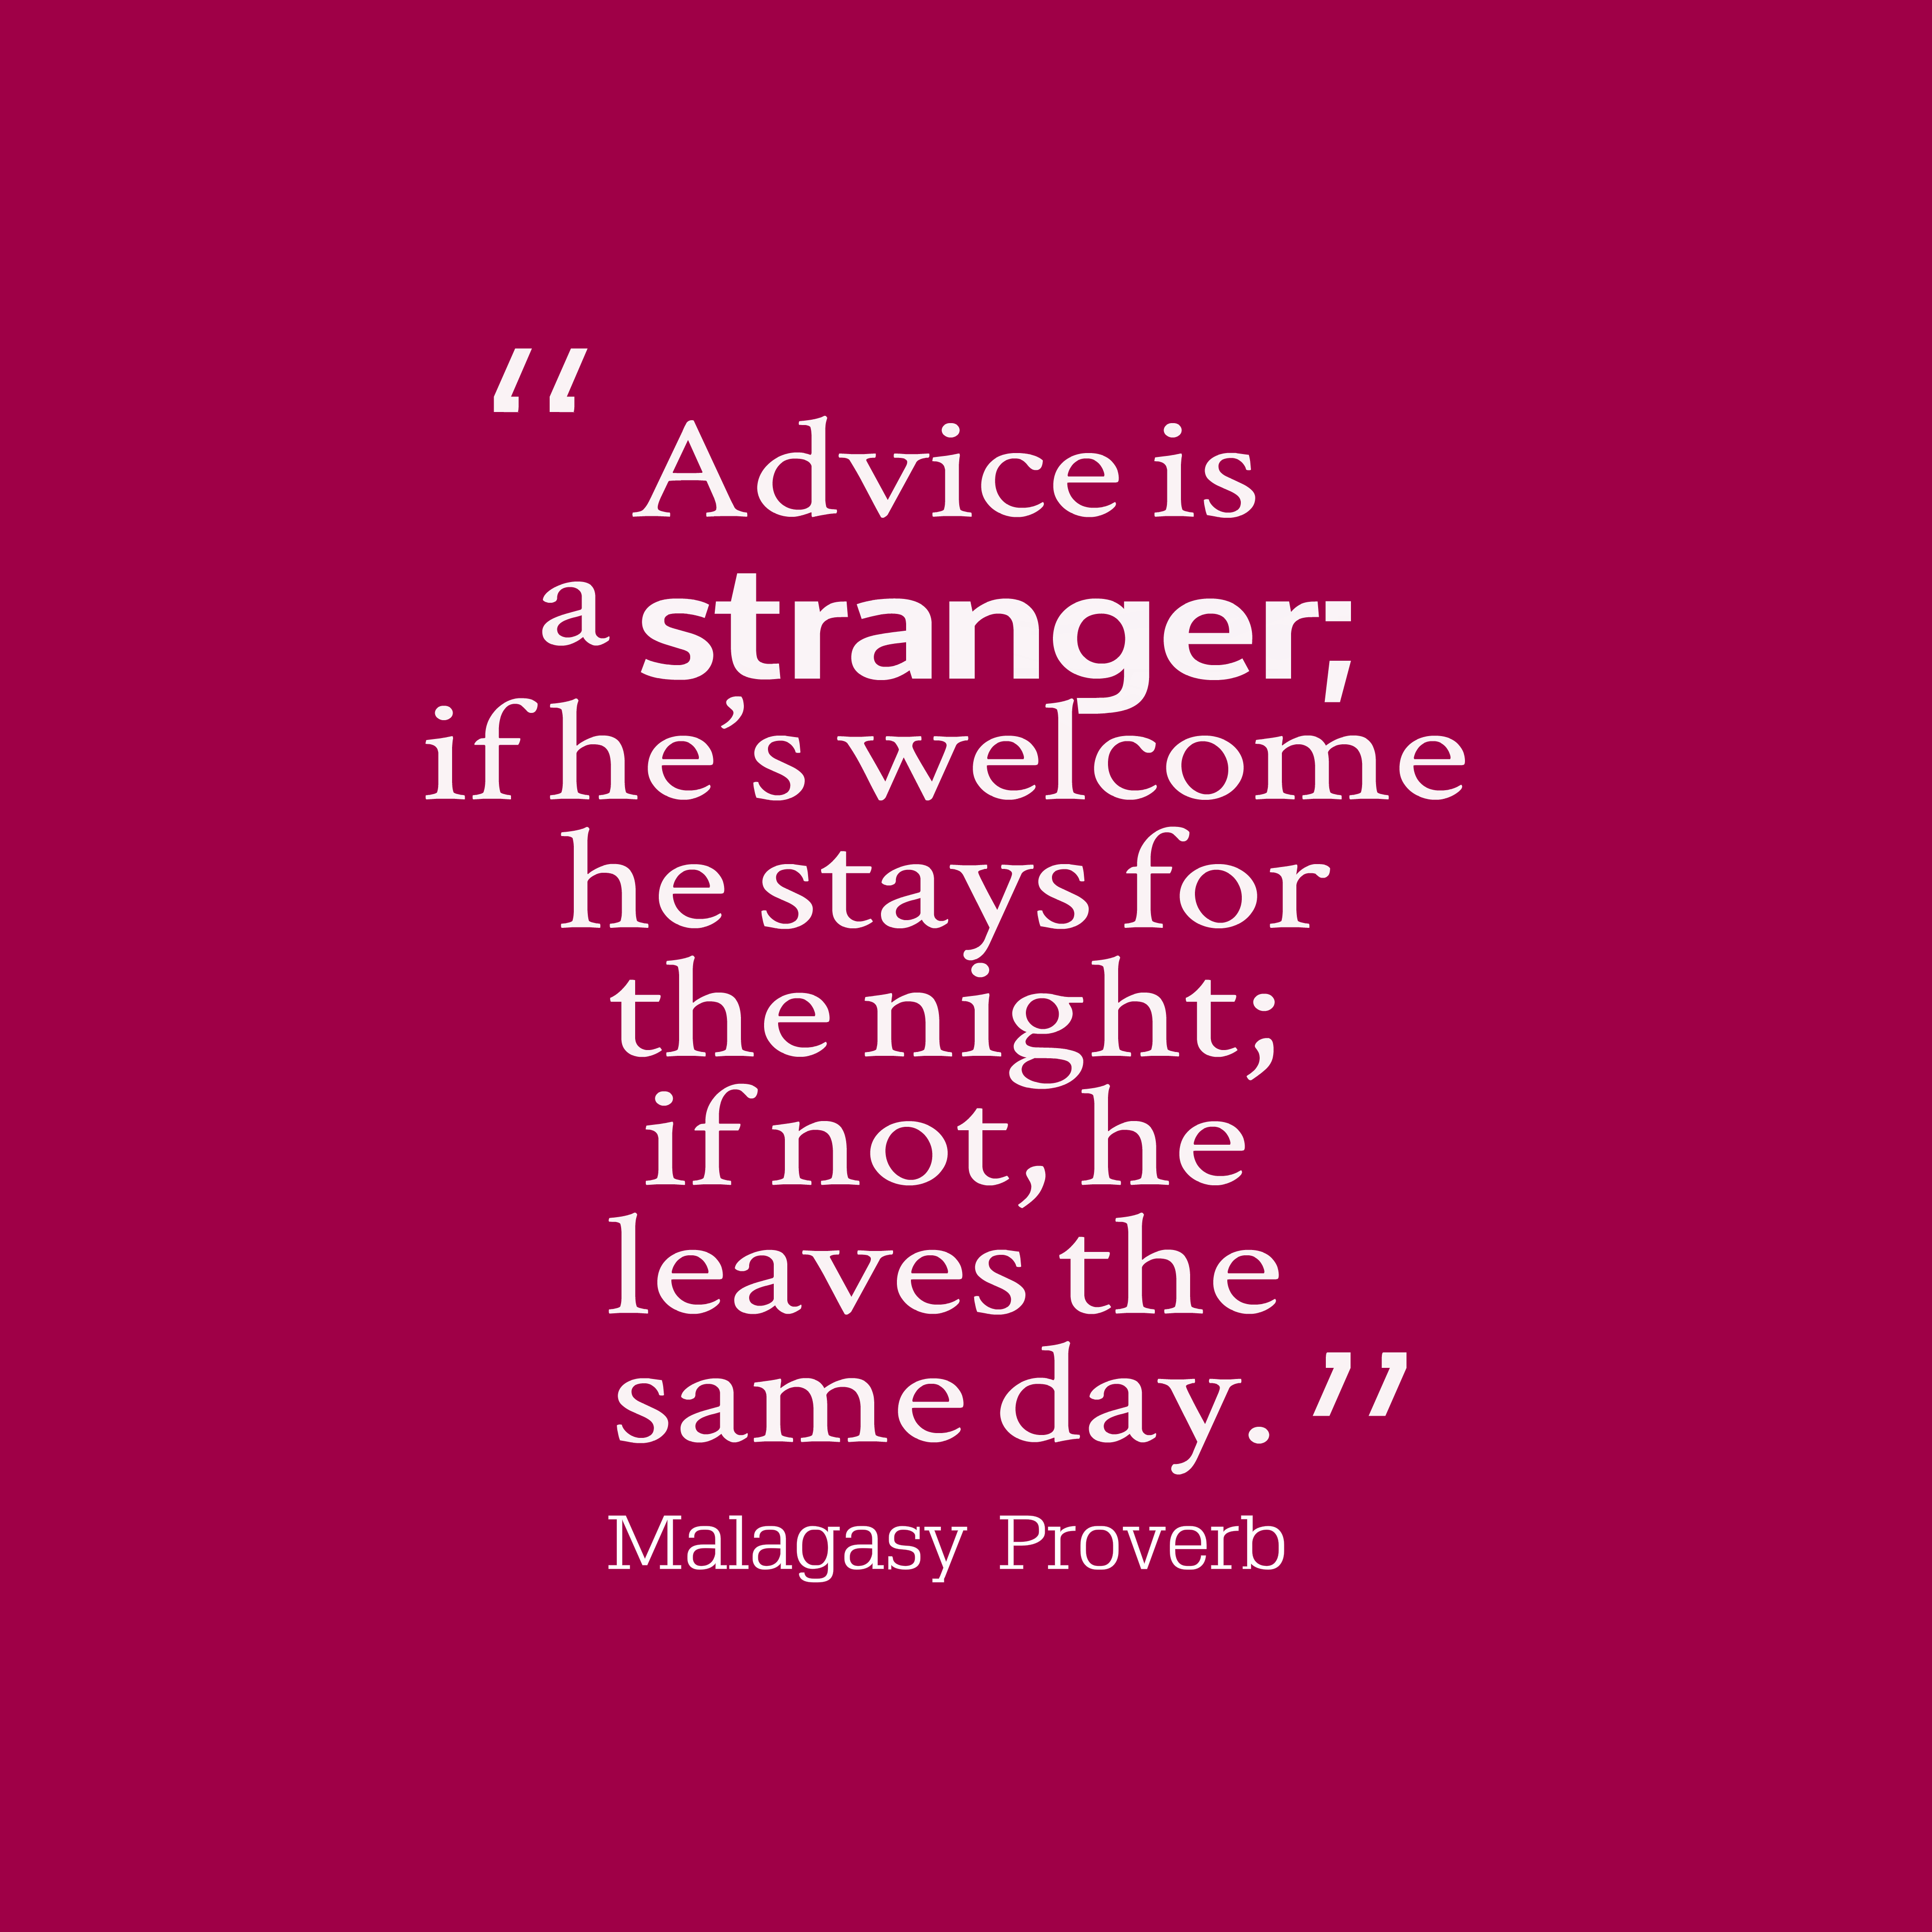 Quotes image of Advice is a stranger; if he's welcome he stays for the night; if not, he leaves the same day.